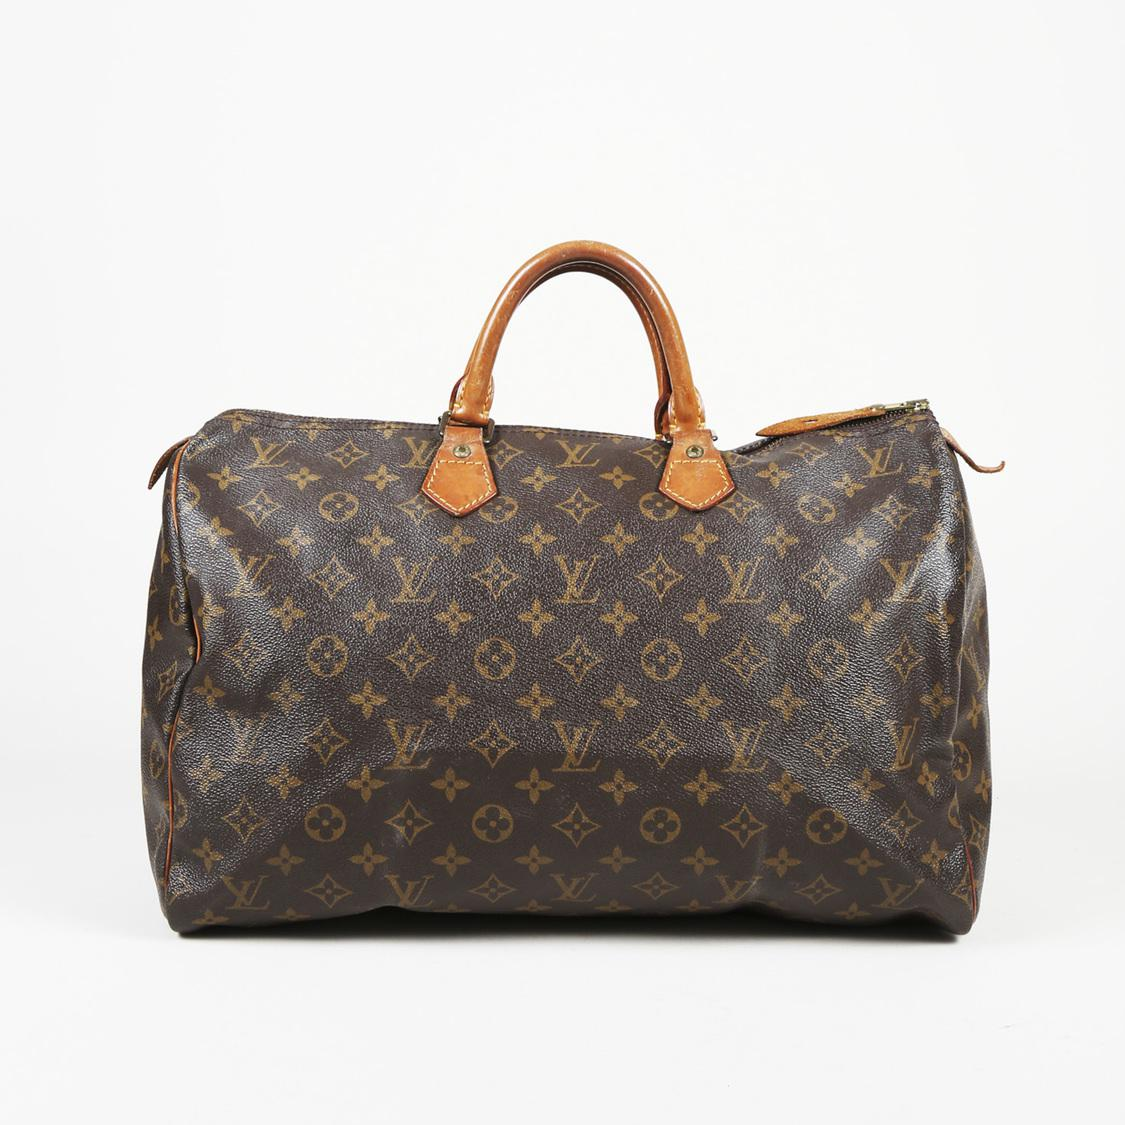 9c6eb47e22f6 Louis Vuitton. Women s Brown Vintage Monogram Coated Canvas